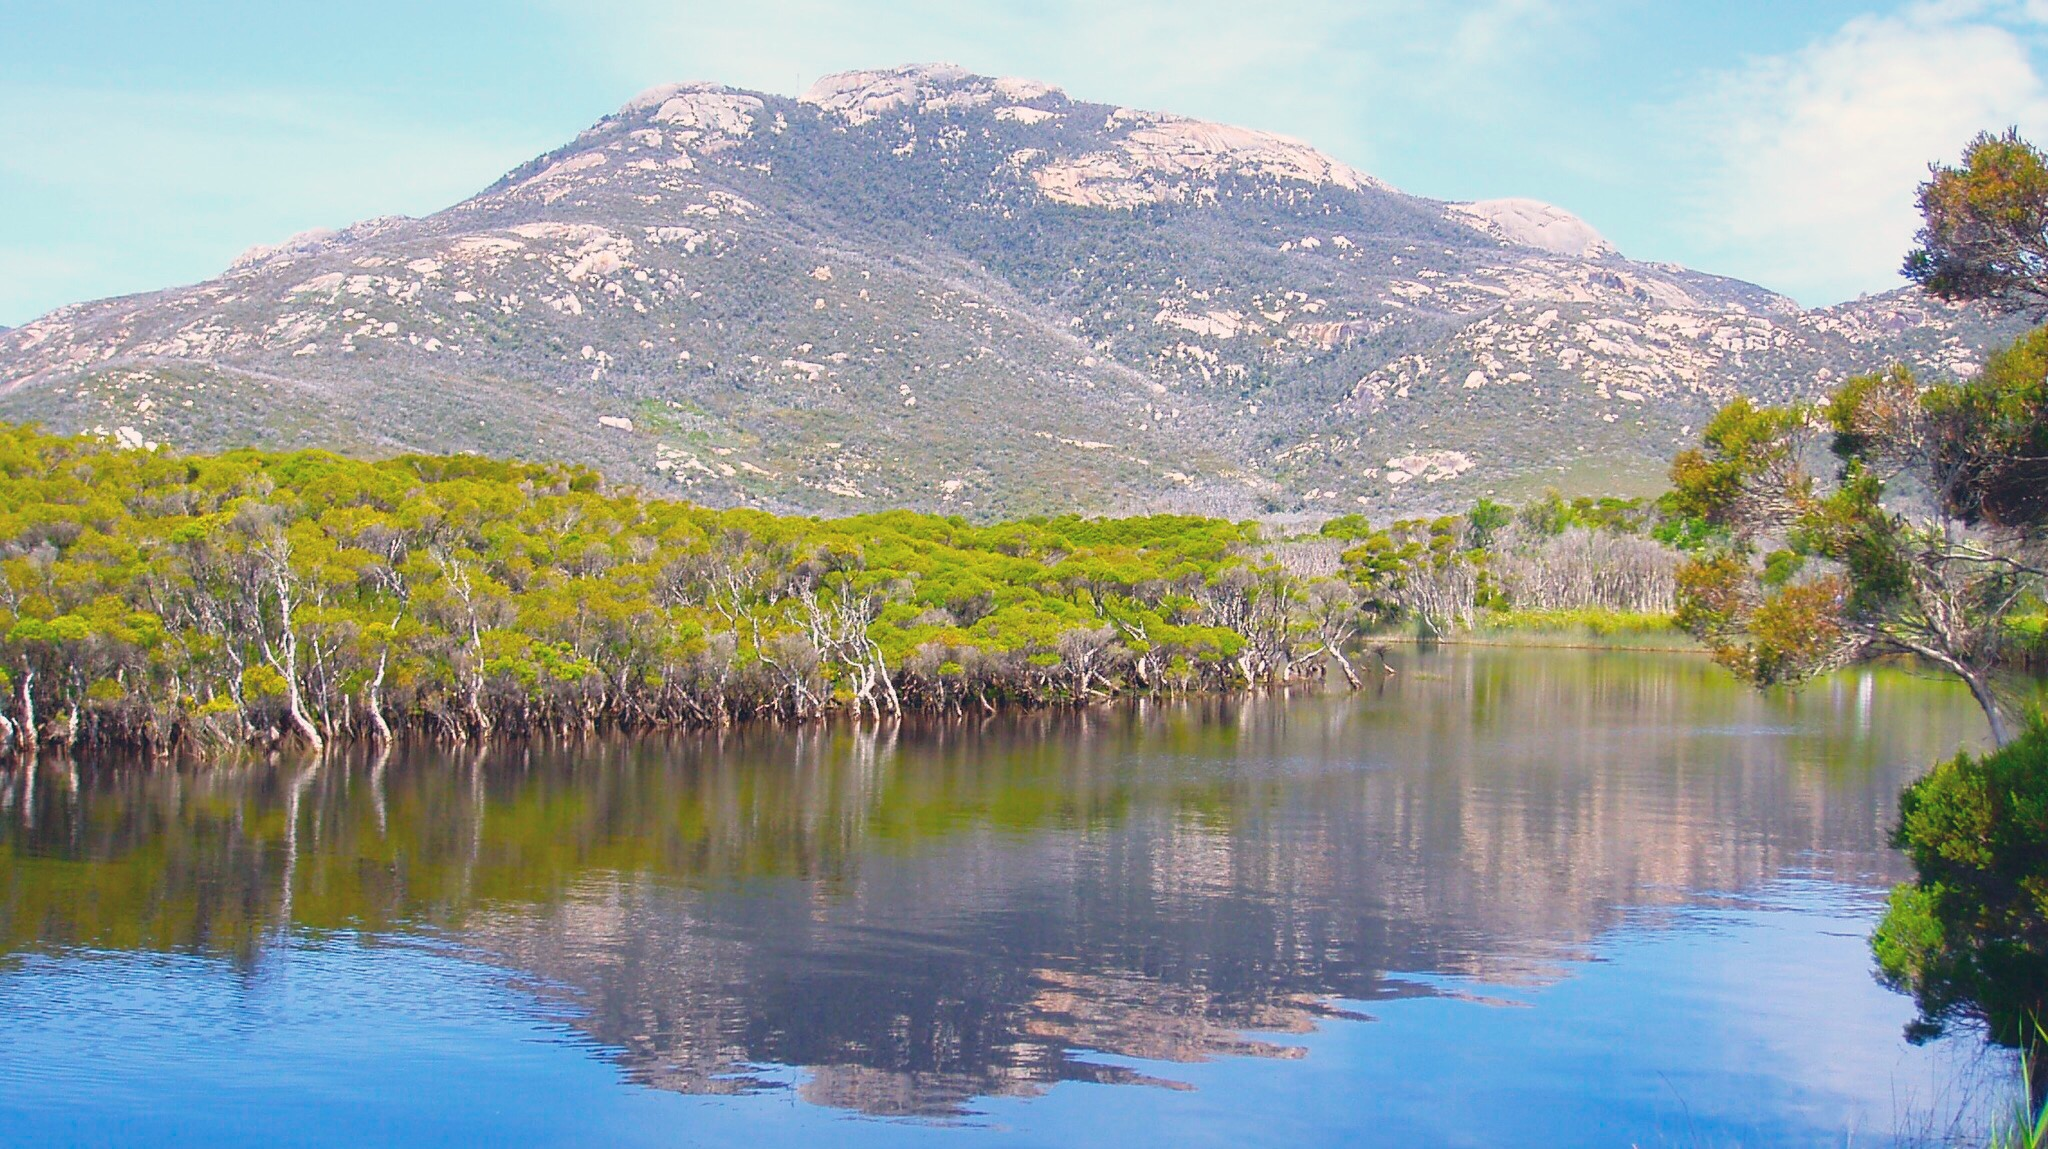 The beauty of Victoria's Wilsons Promontory National Park